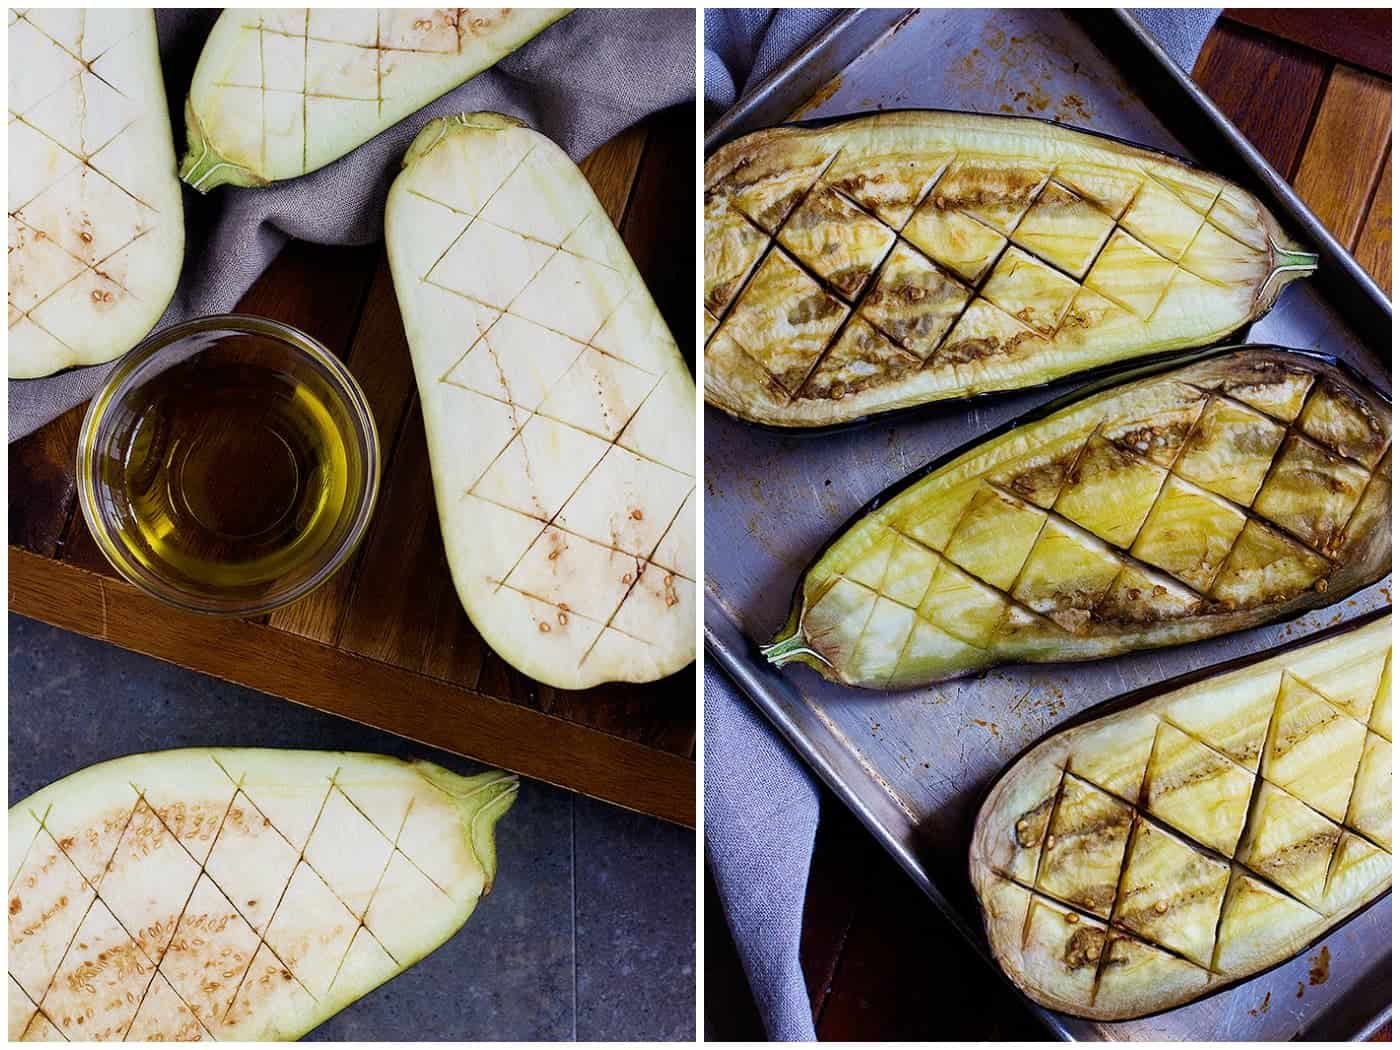 To make Stuffed Eggplant, cut diamonds on the eggplant and roast in the oven.